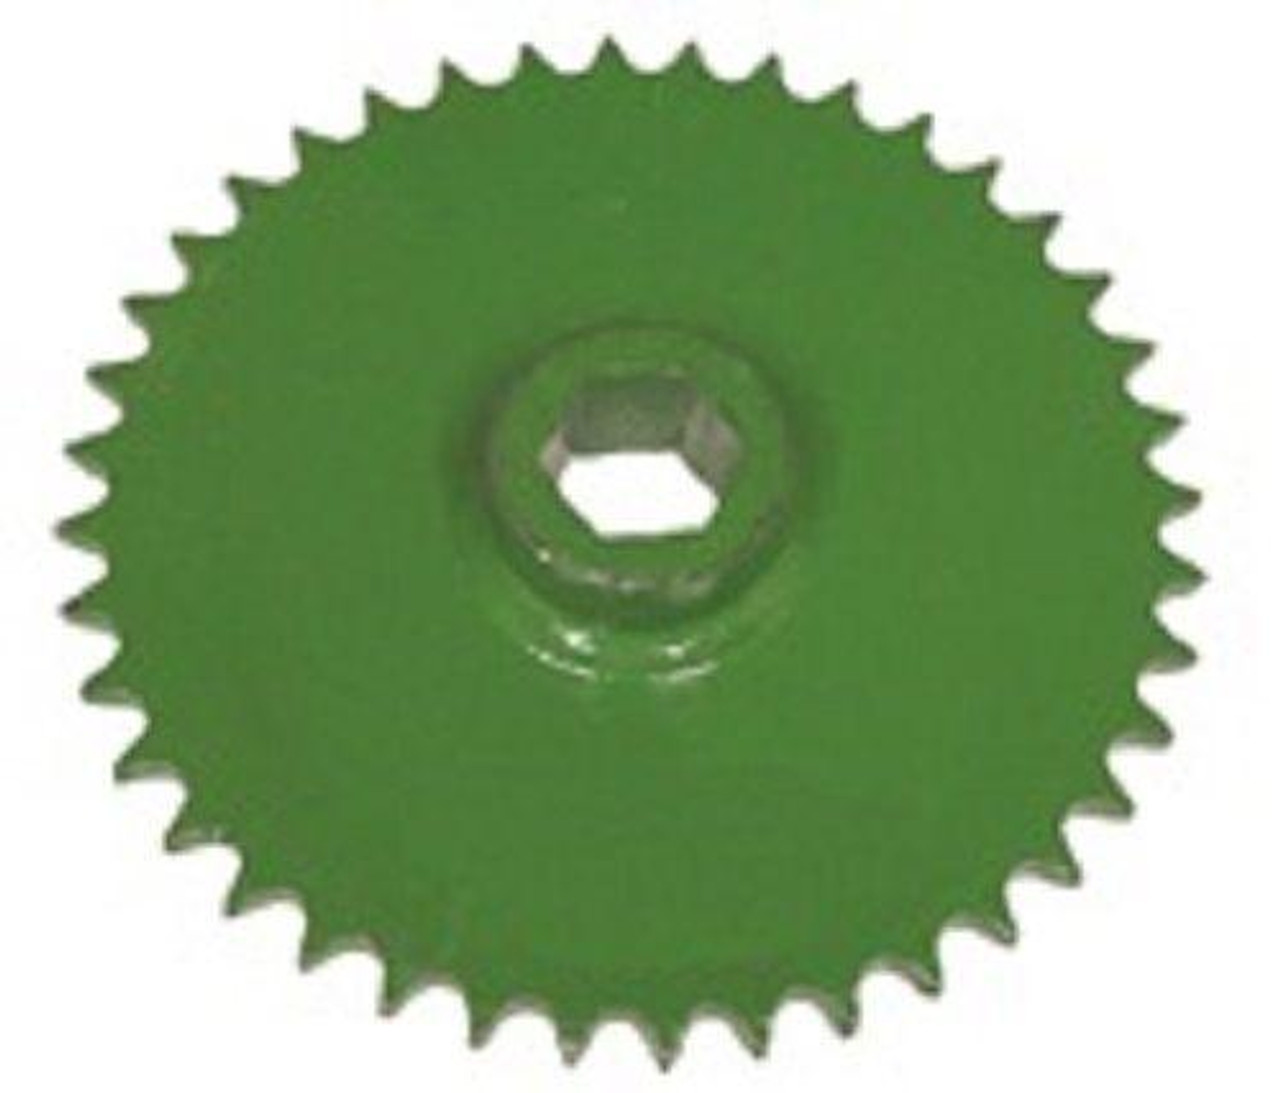 AE39654 Round Baler Upper Drive Roll Sprocket for John Deere 330 335 375 +